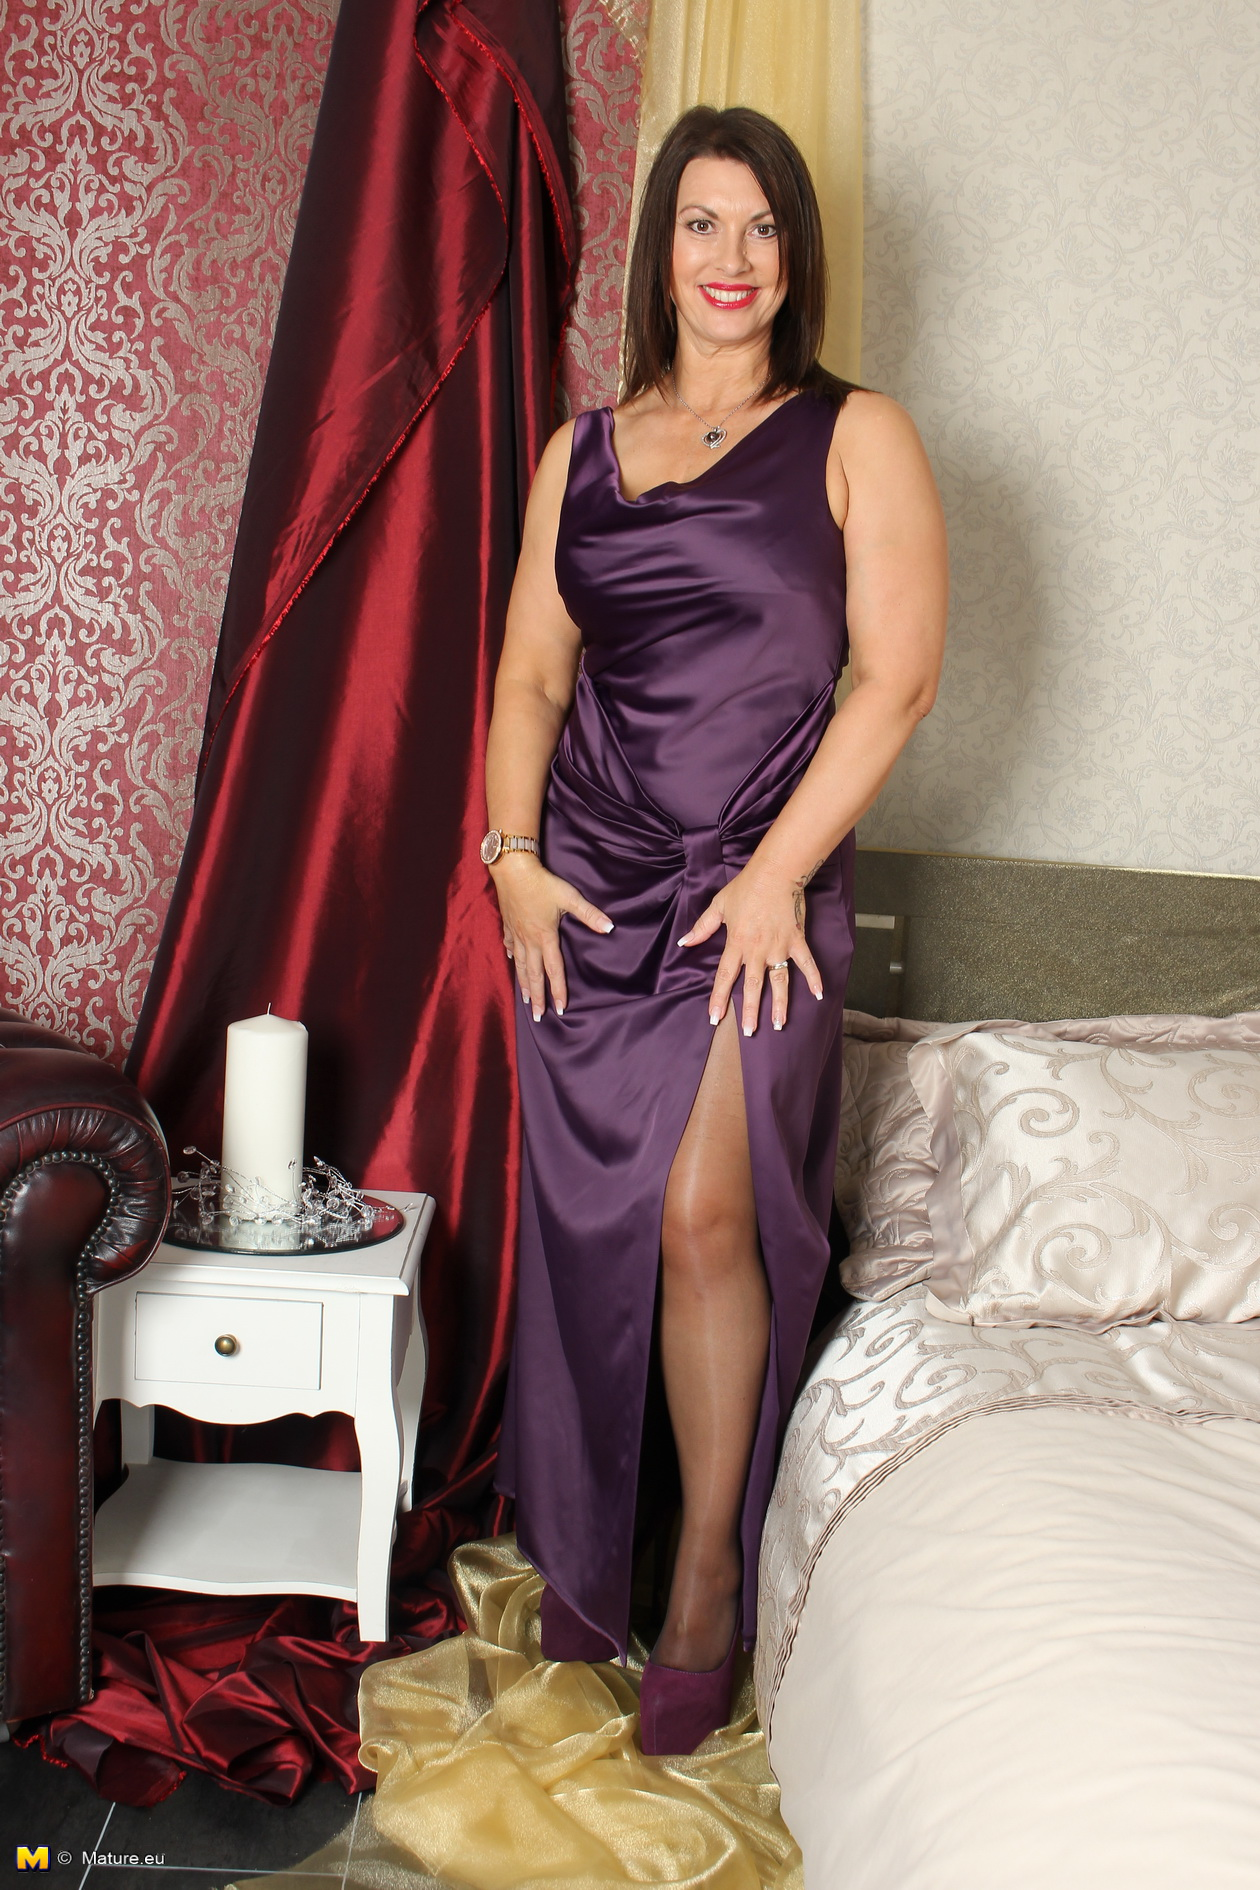 Couple british milf galleries burciaga xxx